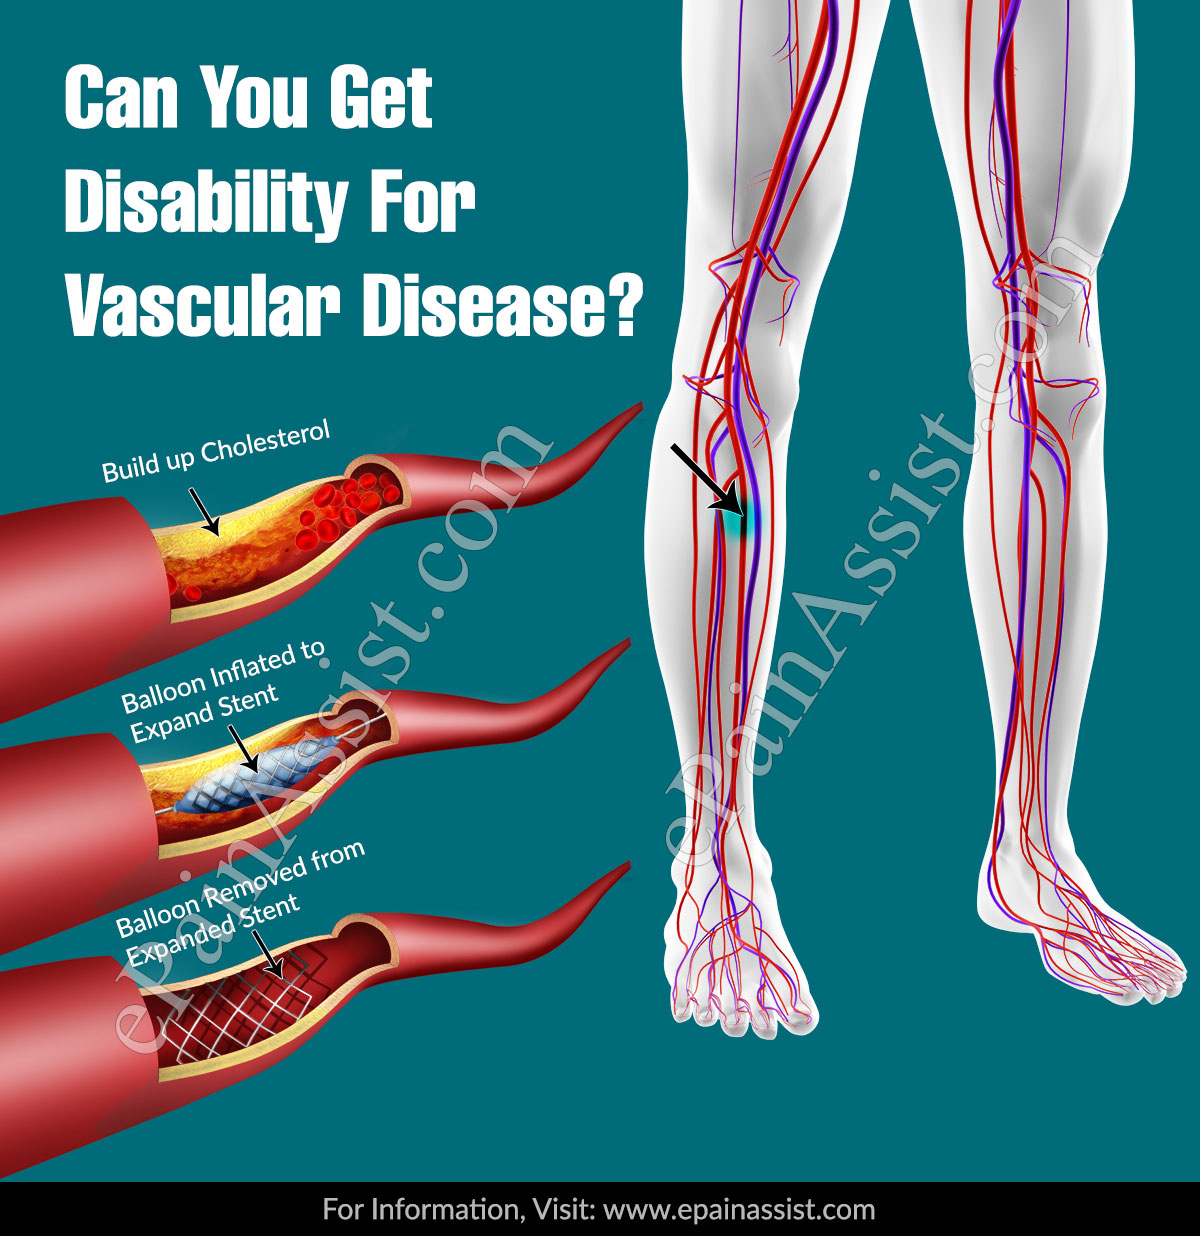 Can You Get Disability For Vascular Disease?